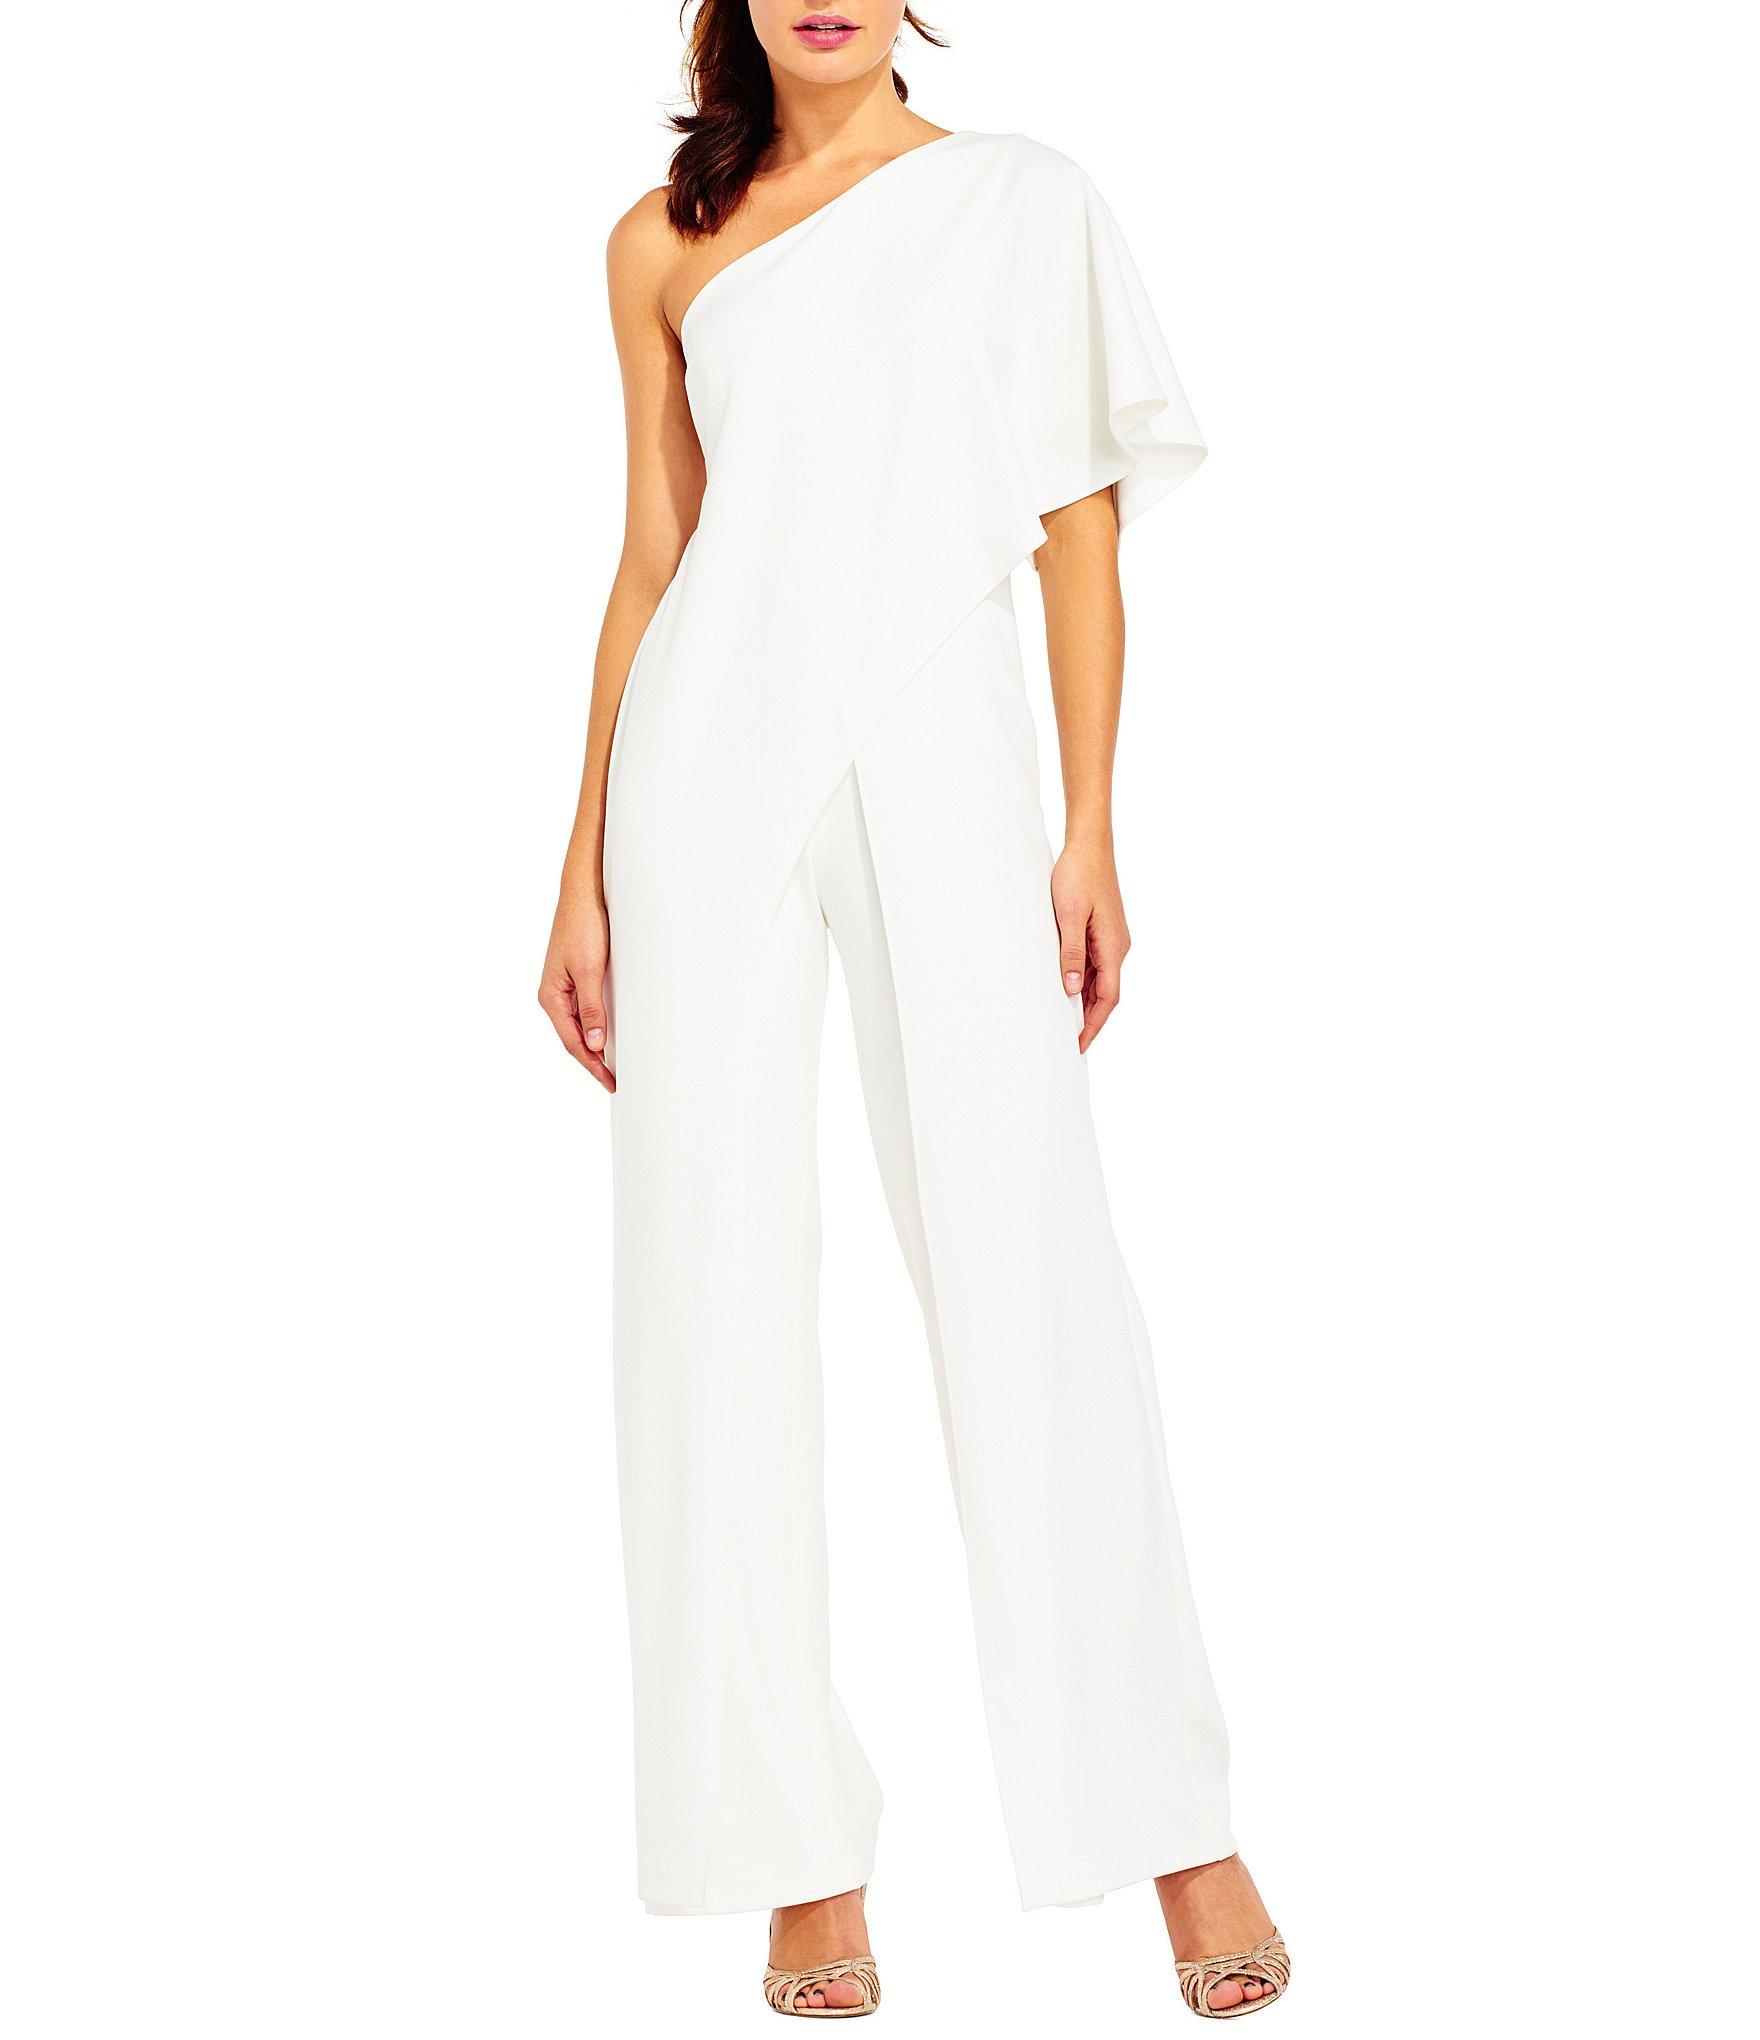 77f3b4a1981 Lyst - Adrianna Papell Crepe One Shoulder Jumpsuit in White